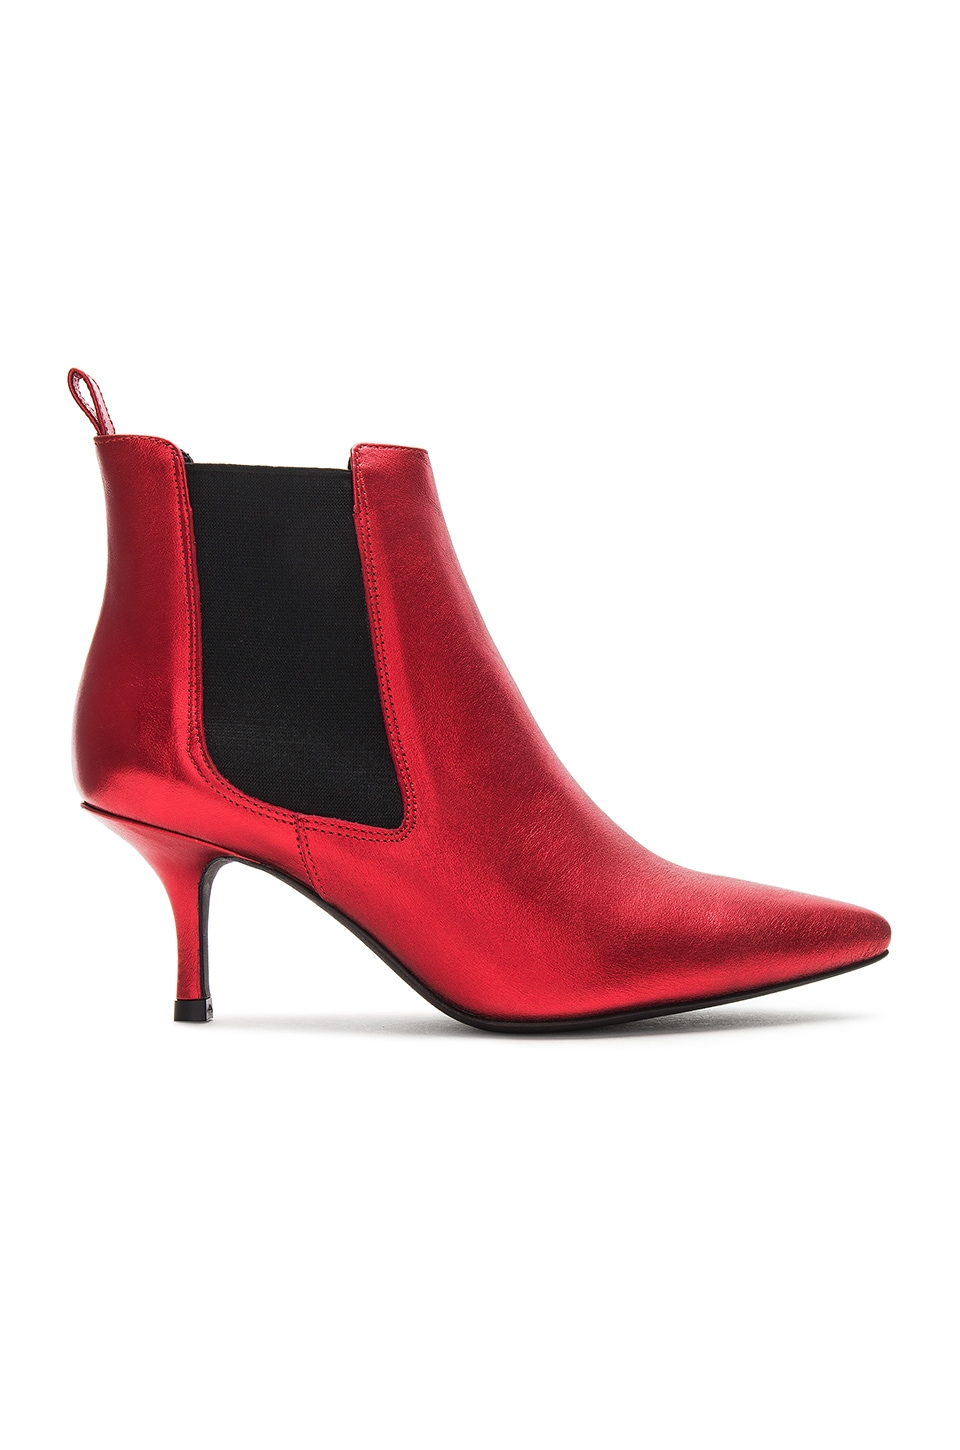 ANINE BING Stevie Boot in Red